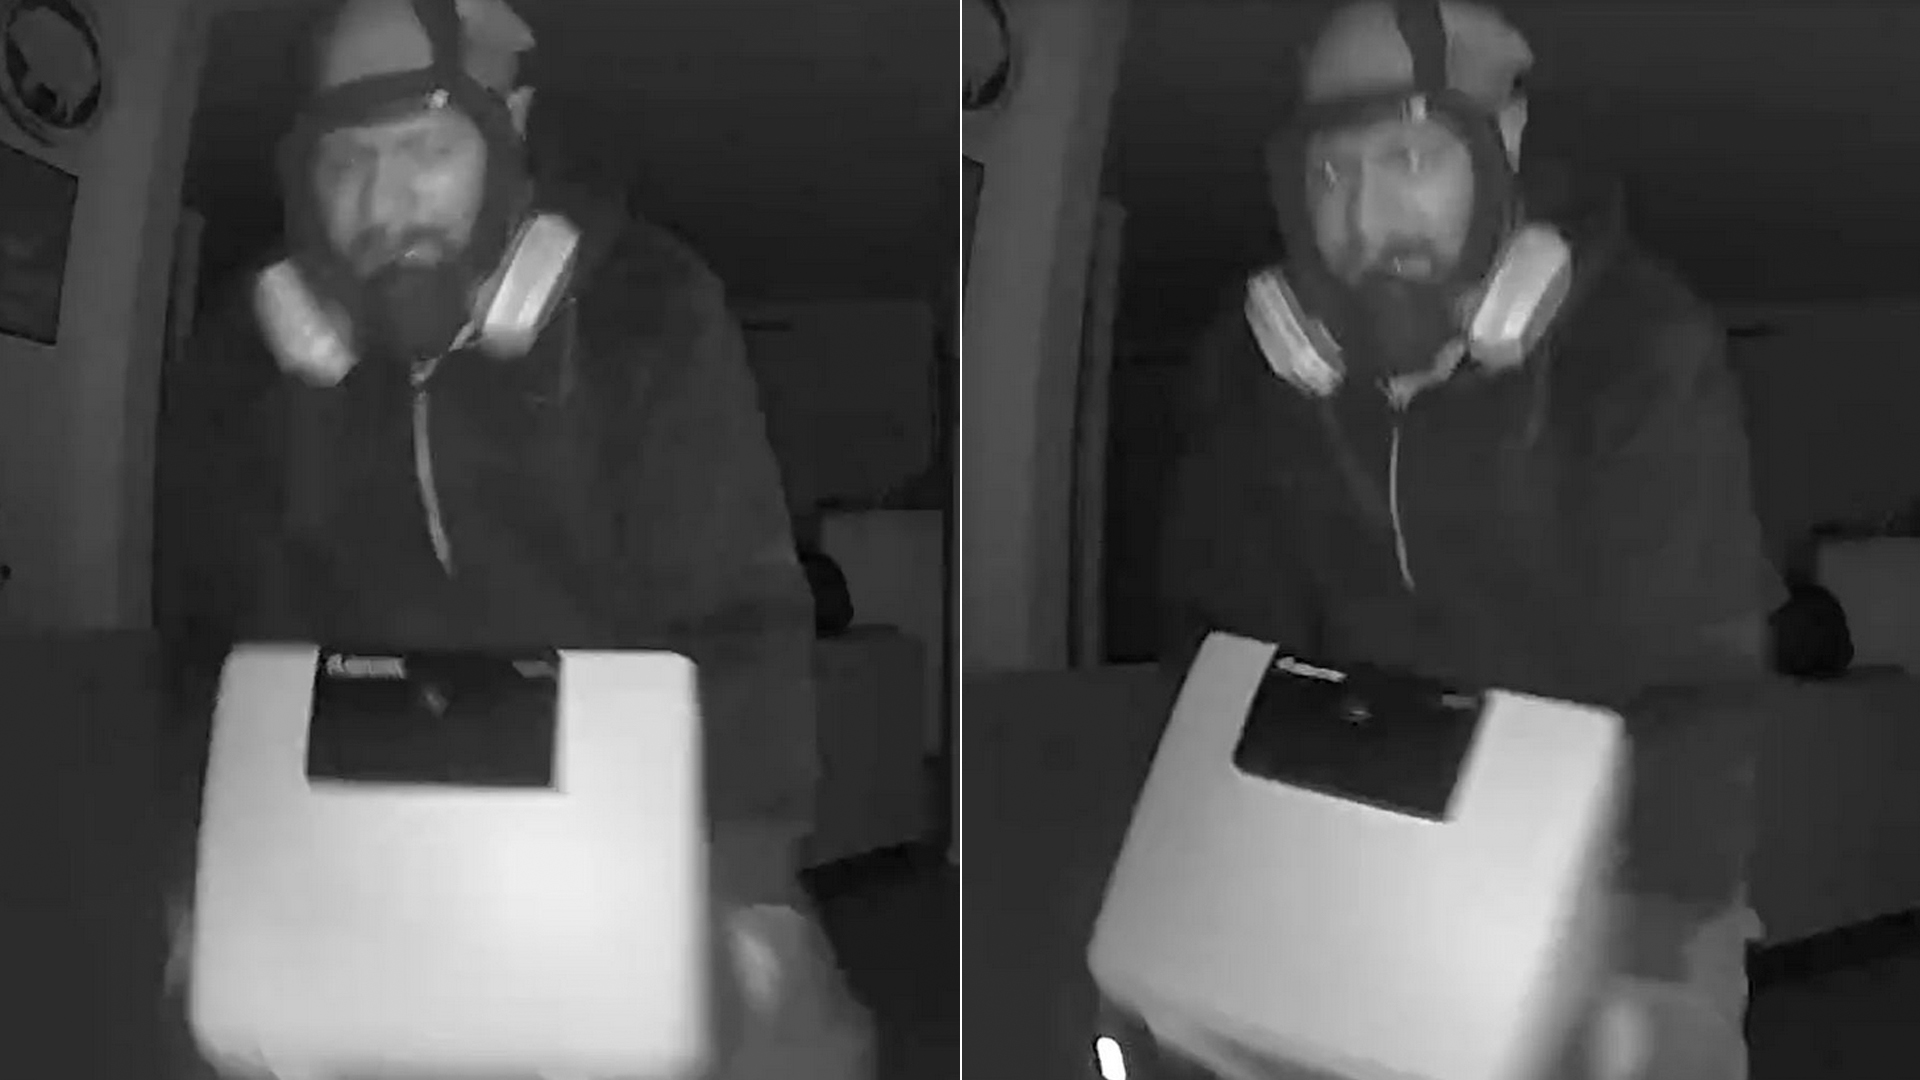 A man who allegedly stole a safe from a home being fumigated on June 25, 2020 is shown in photos provided by the Ventura Police Department on July 7, 2020.